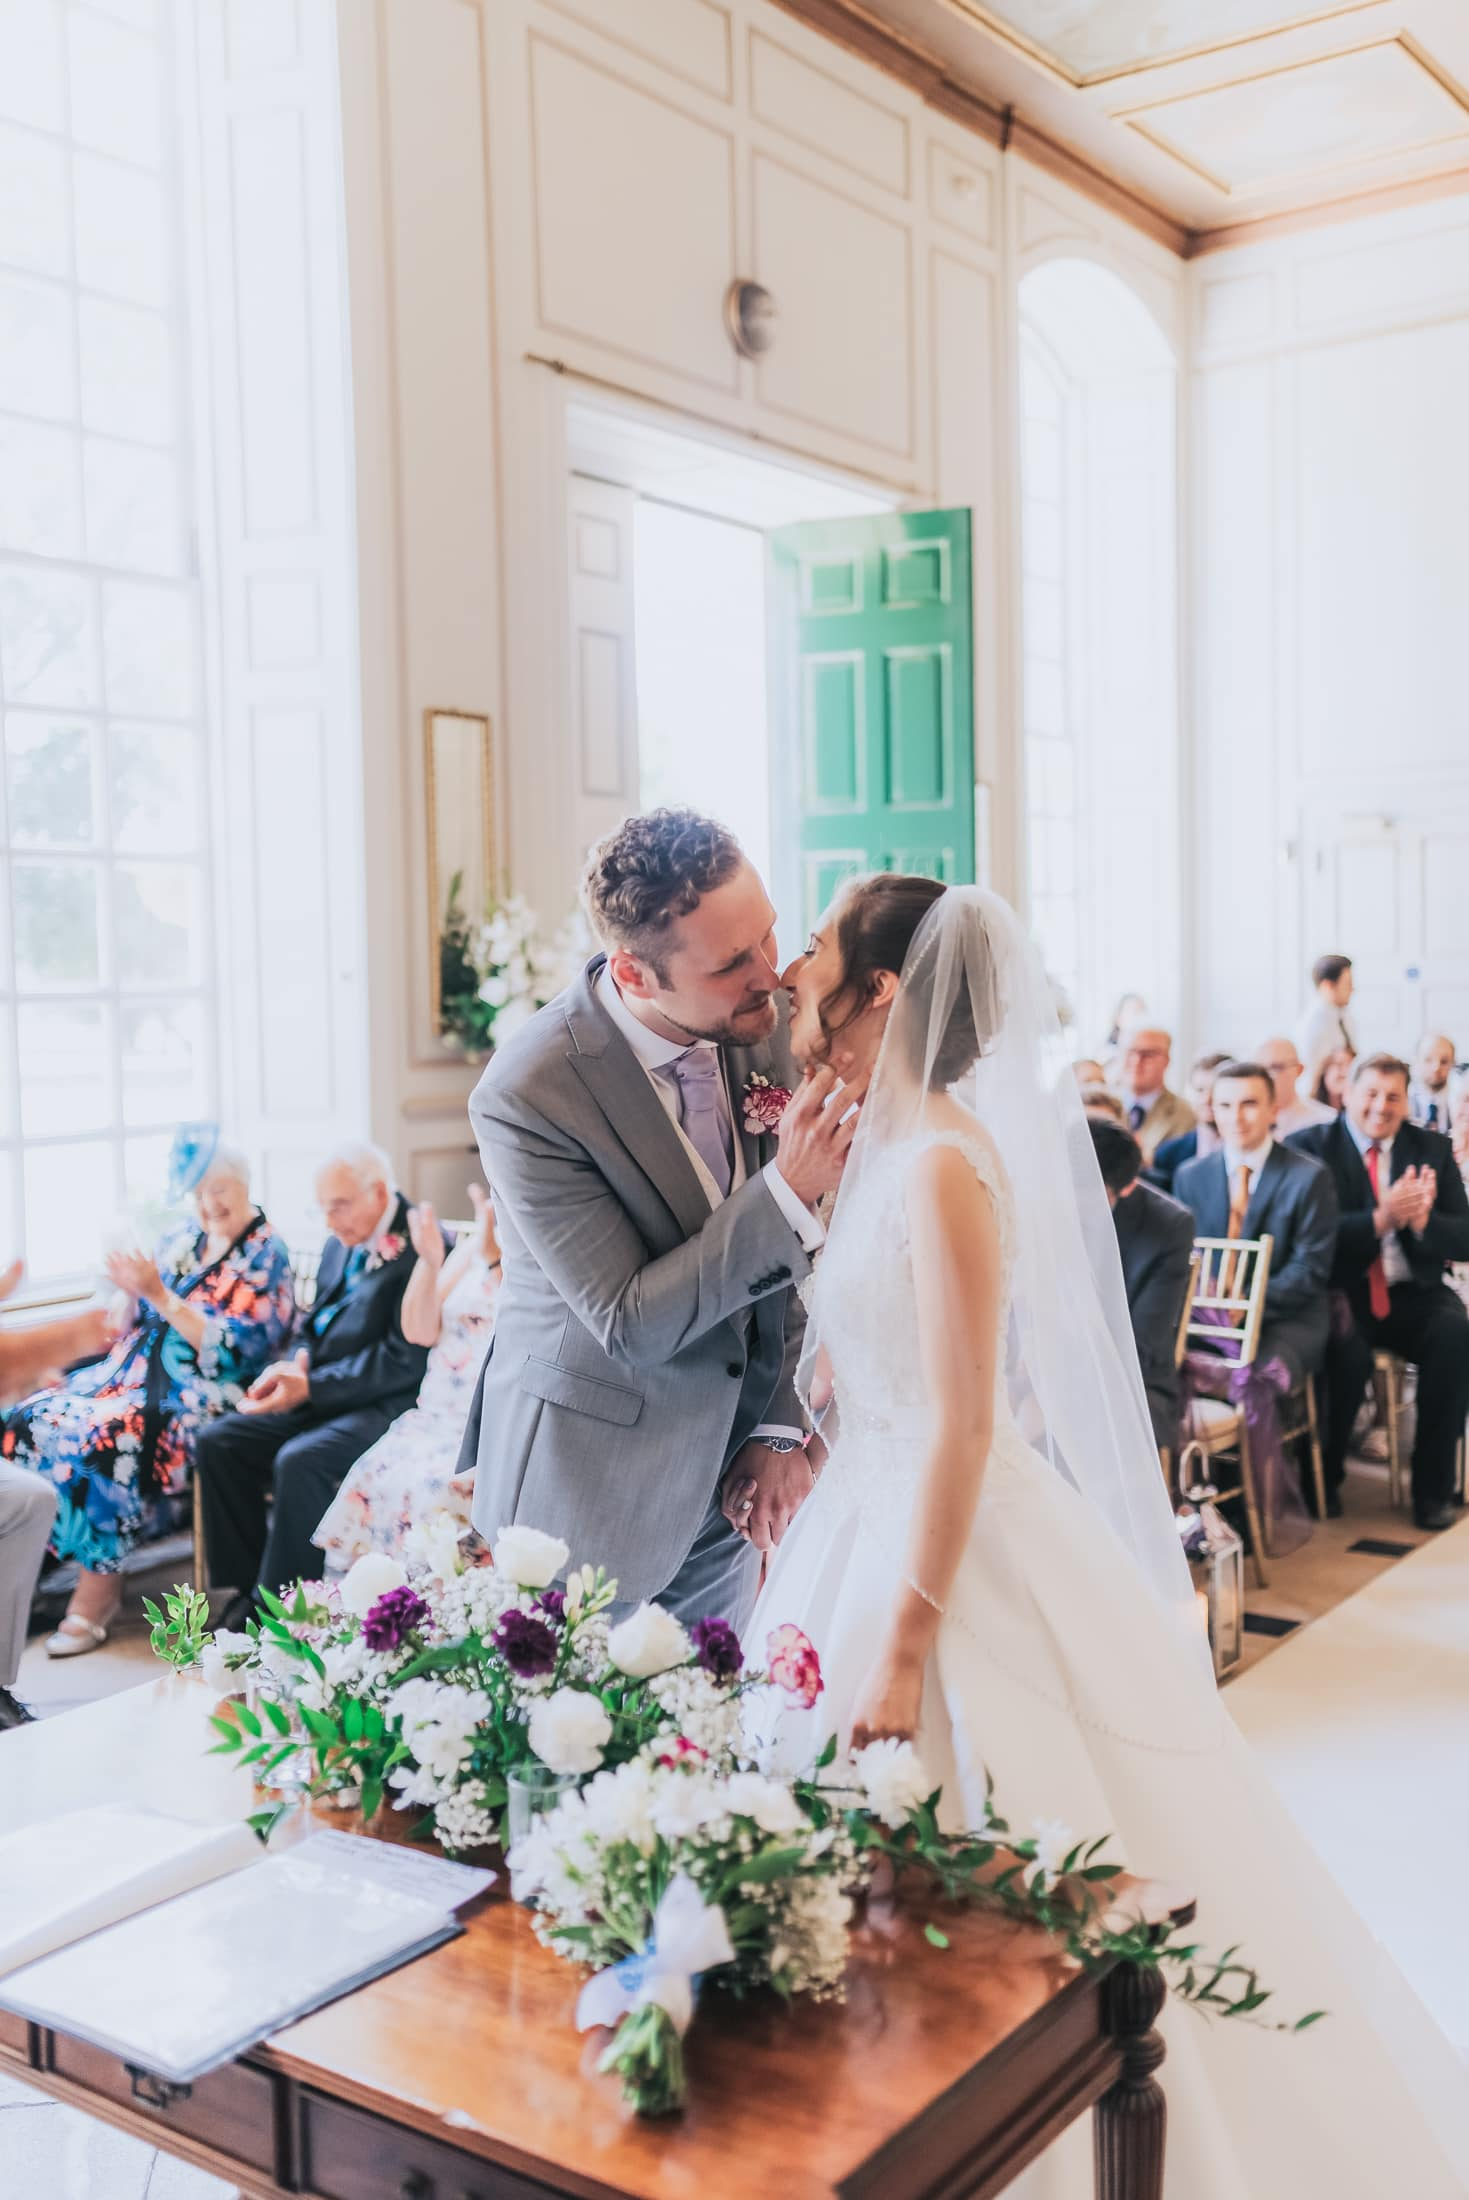 Bride and groom share their first kiss as Husband and wife - Essex Country House Wedding - Gosfield Hall